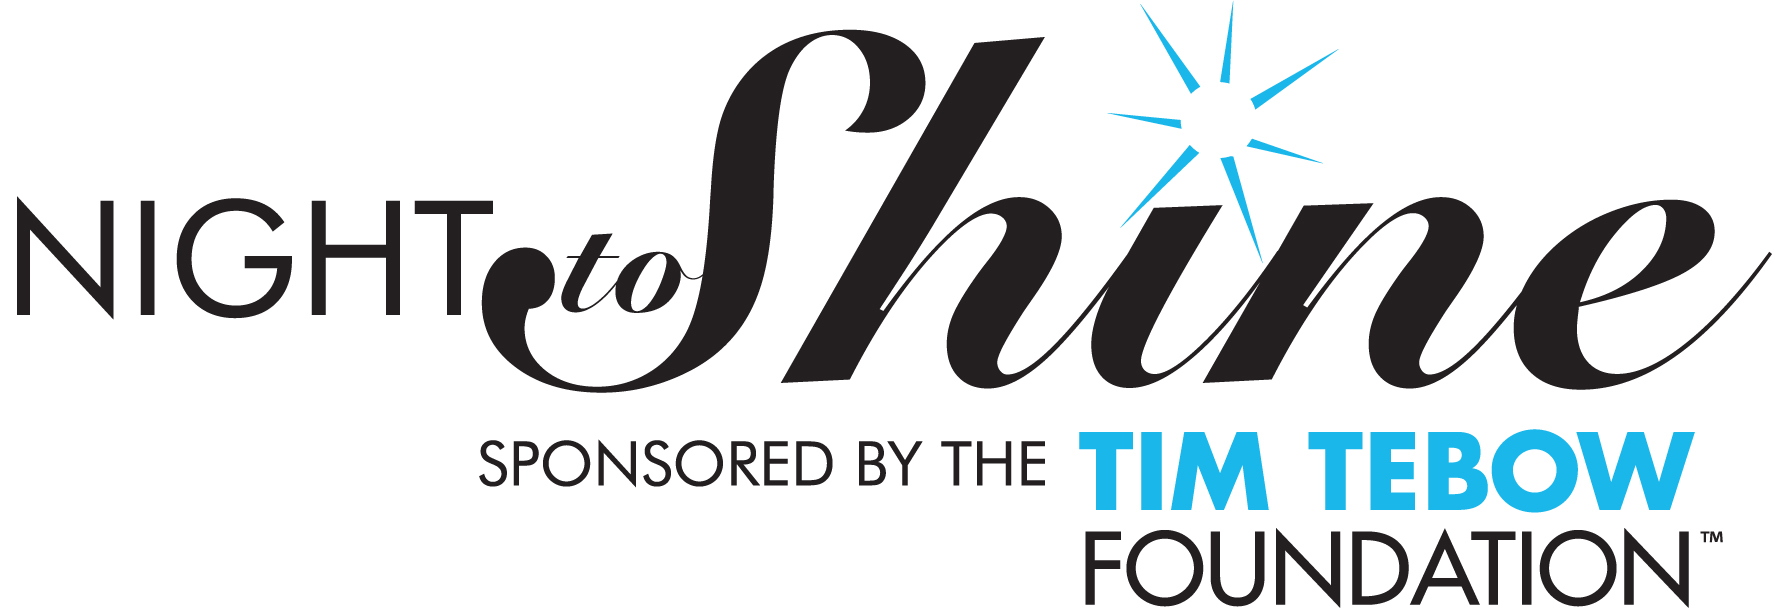 A Night to Shine registration